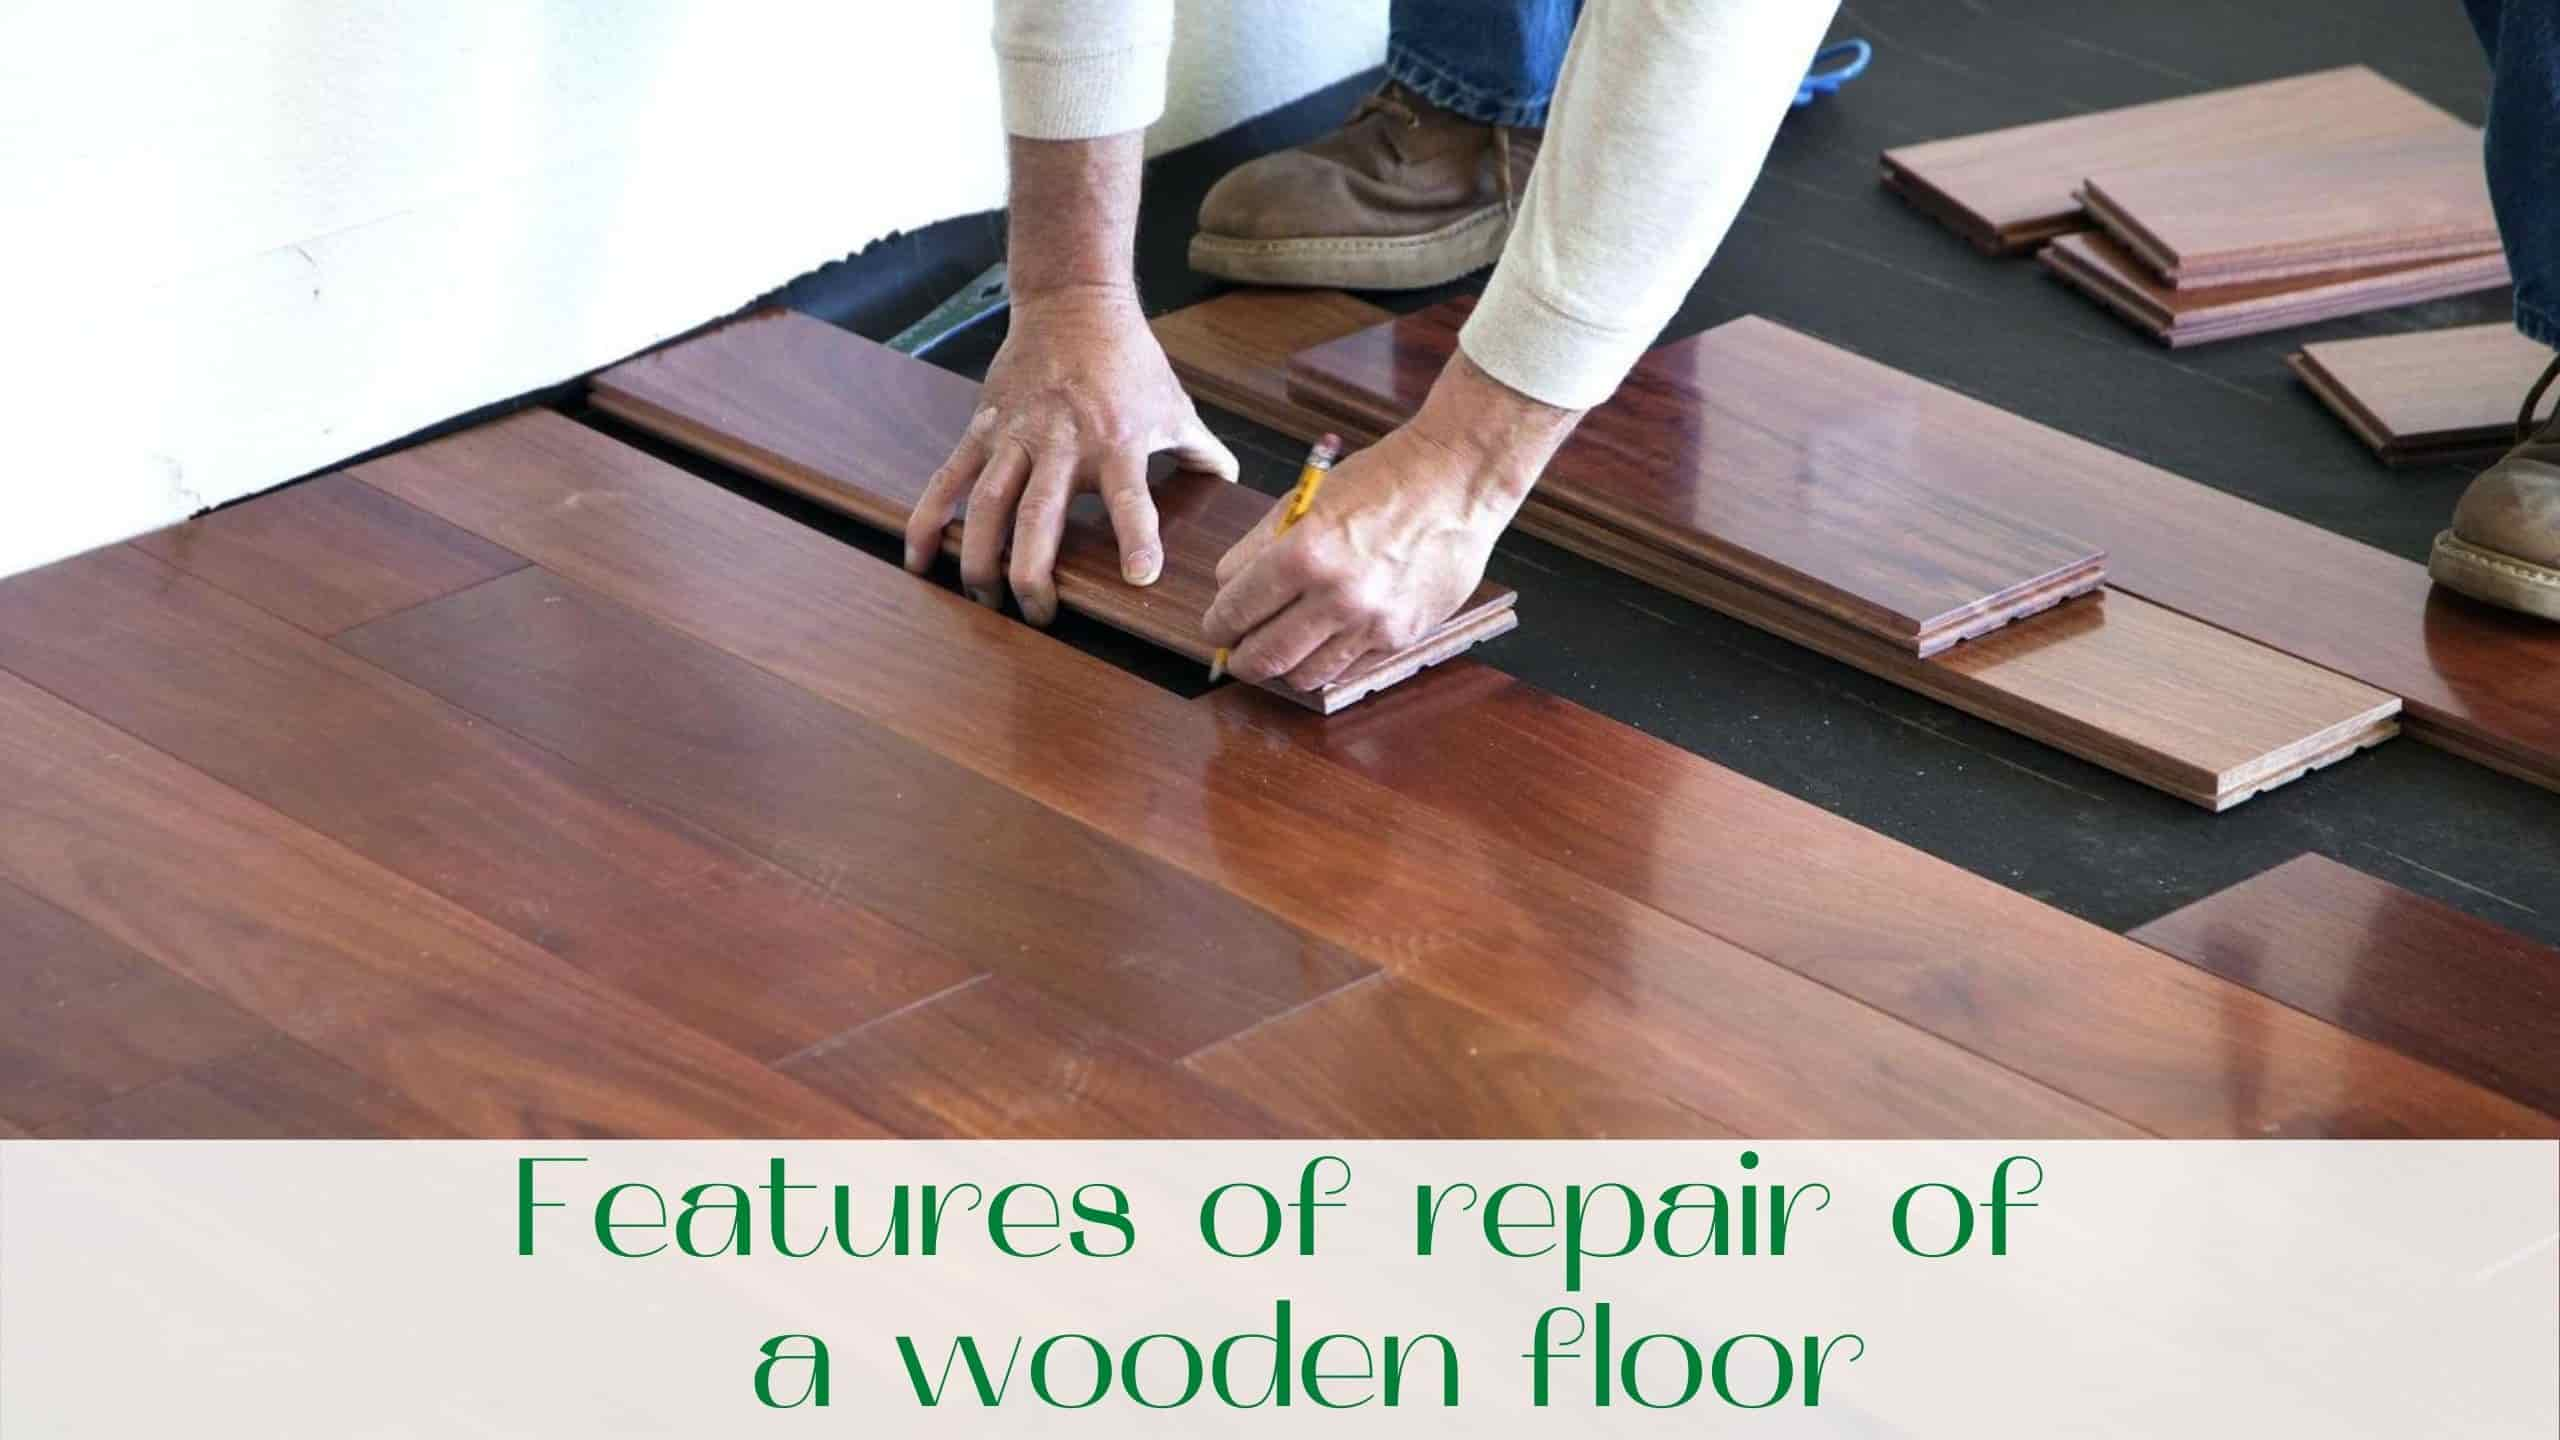 image-Features-of-repair-of-a-wooden-floor